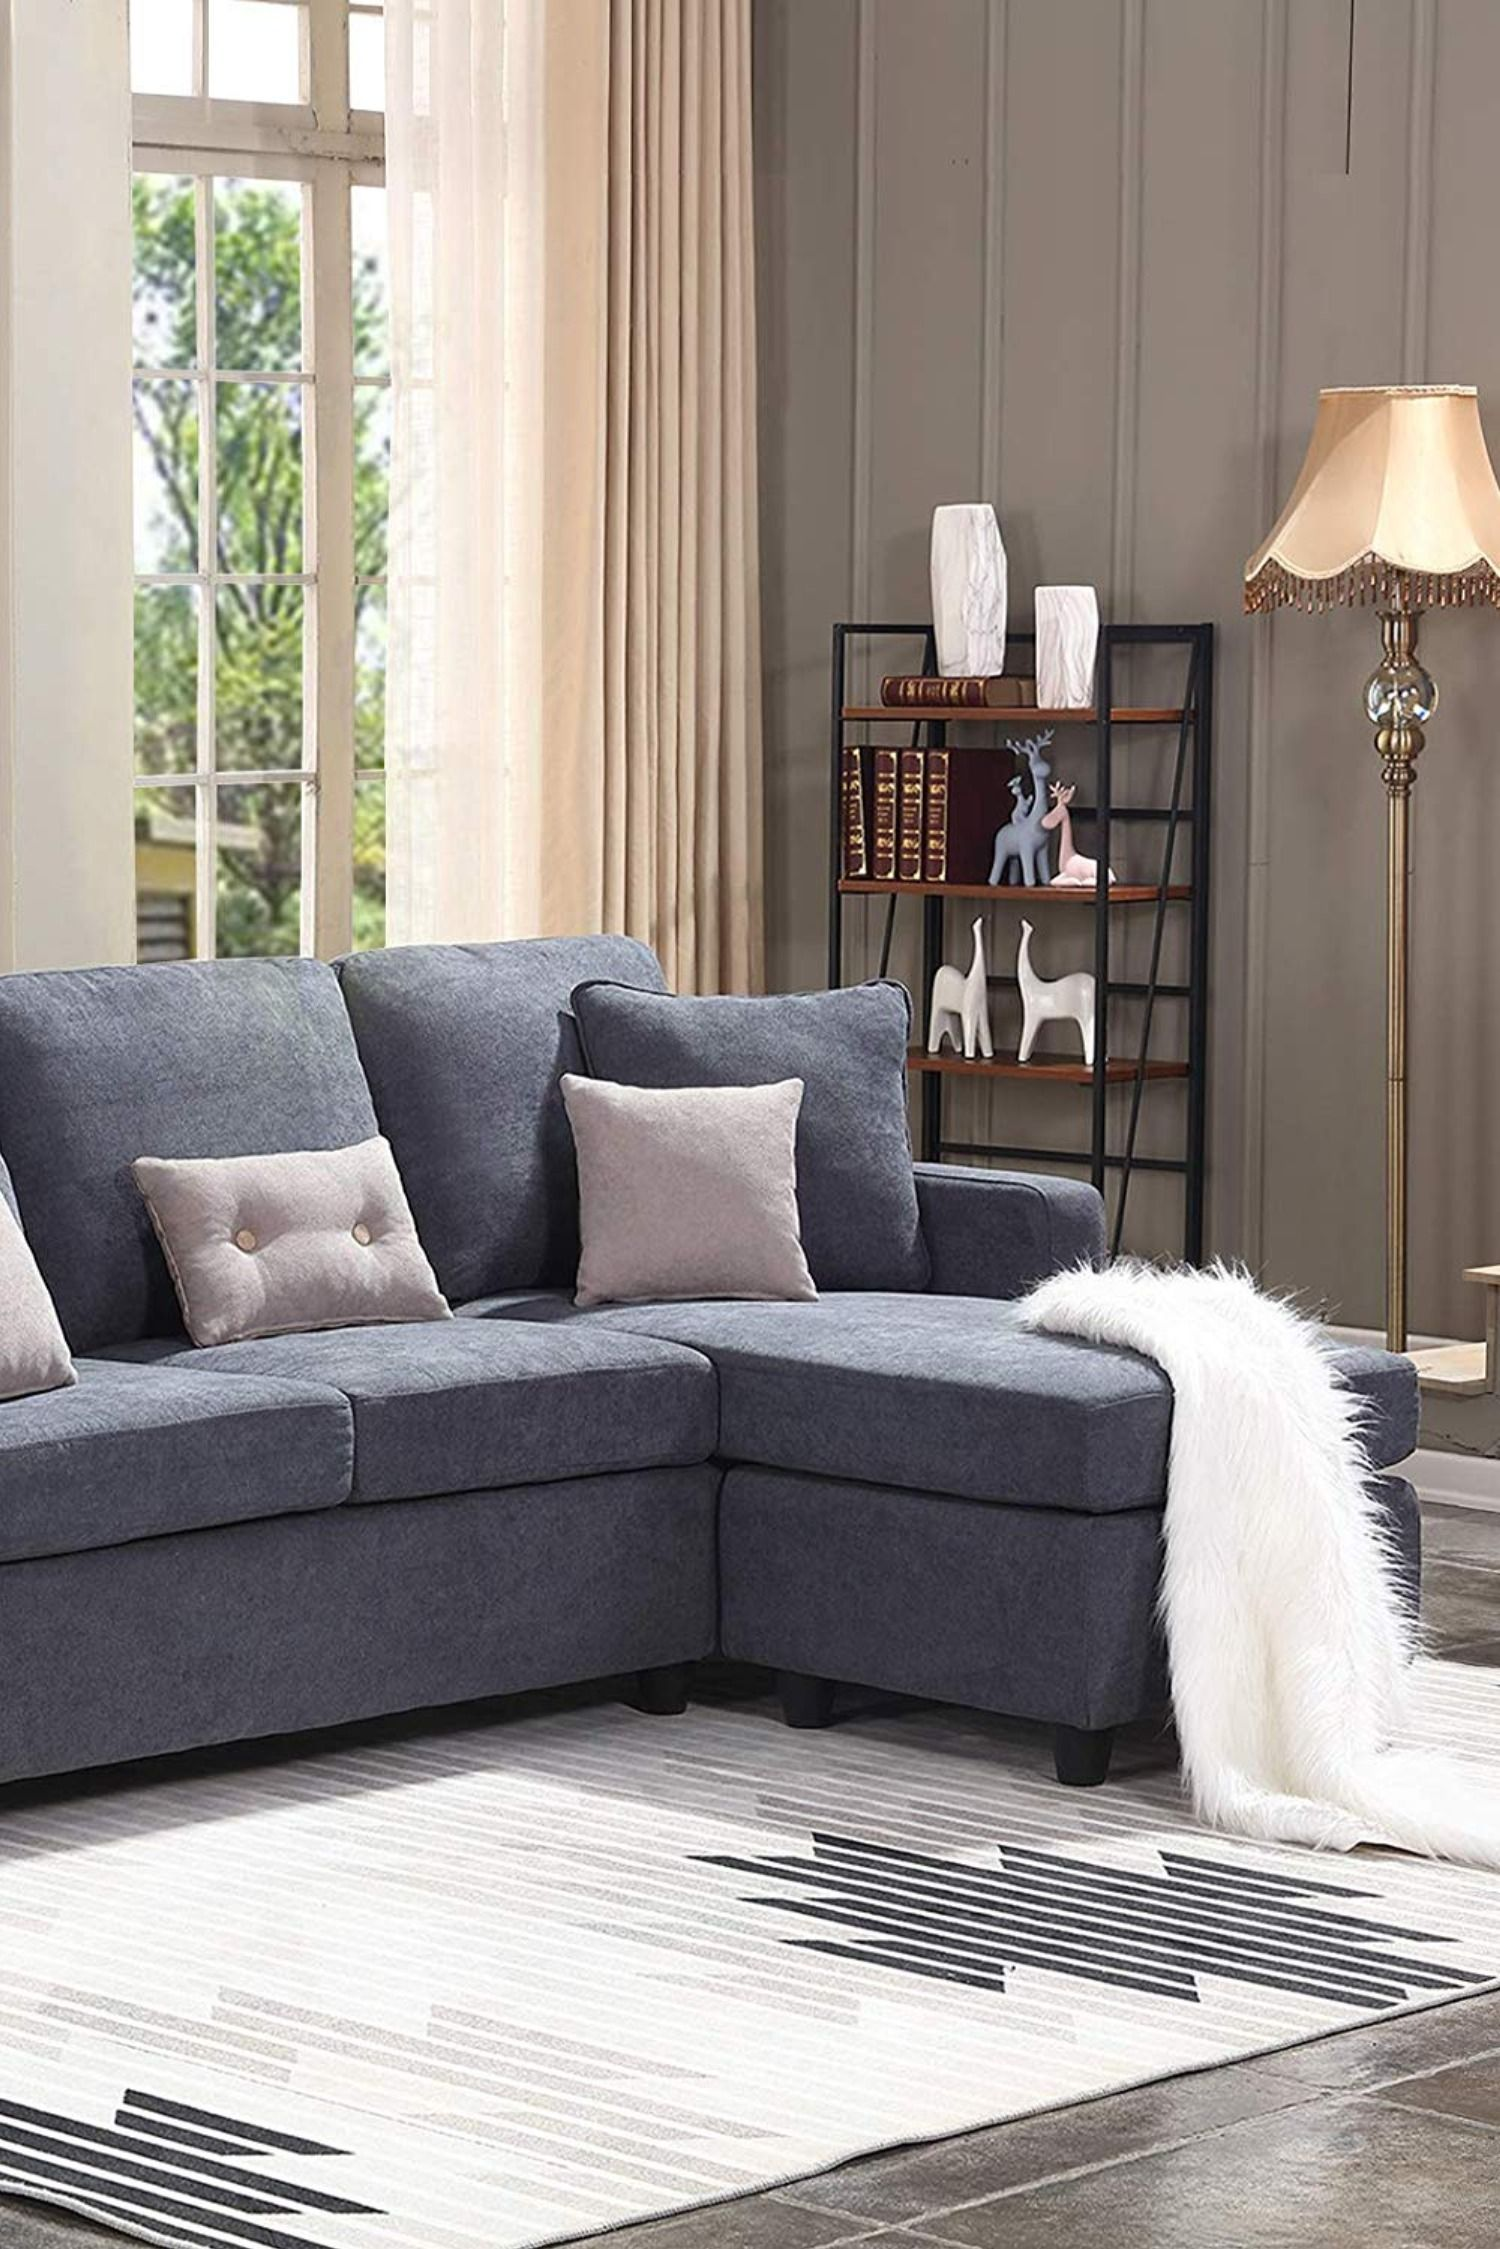 Honbay Convertible Sectional Sofa Couch L Shaped Couch With Modern Linen Fabric For Small Space Sectional Sofa Couch Sectional Sofa Couch Design